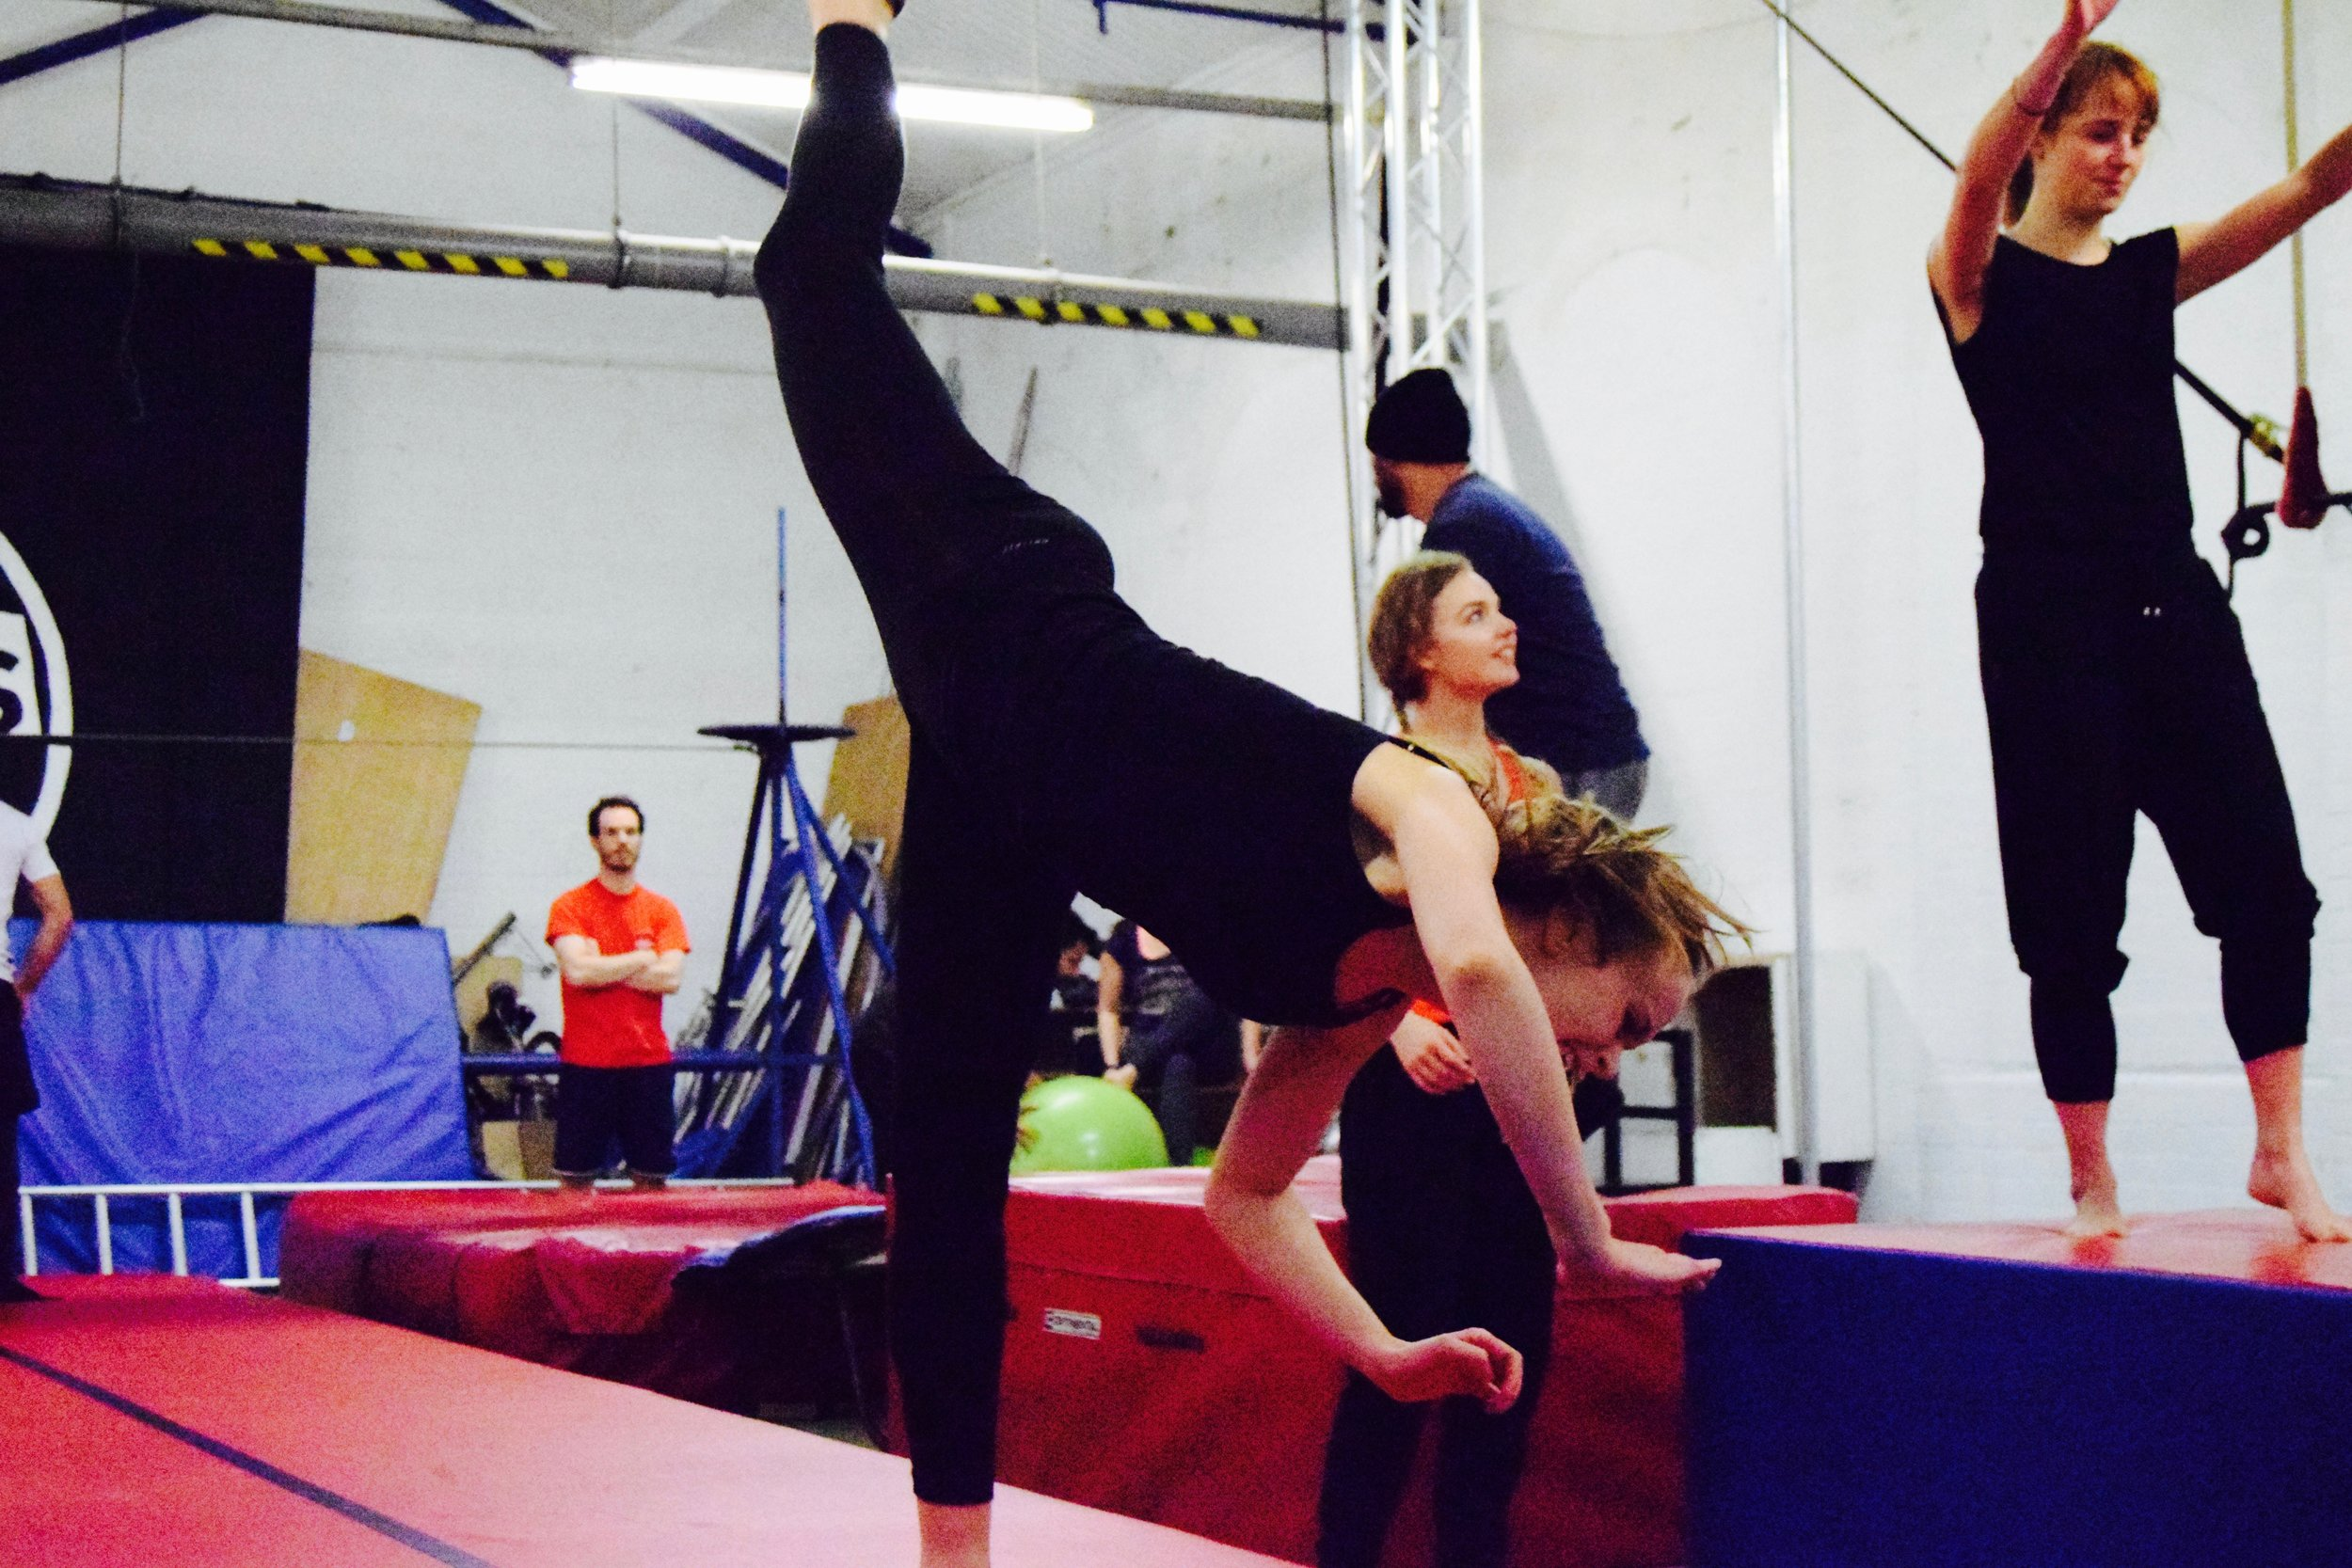 Copy of Copy of Tumbling and Acrobatics - Aerial